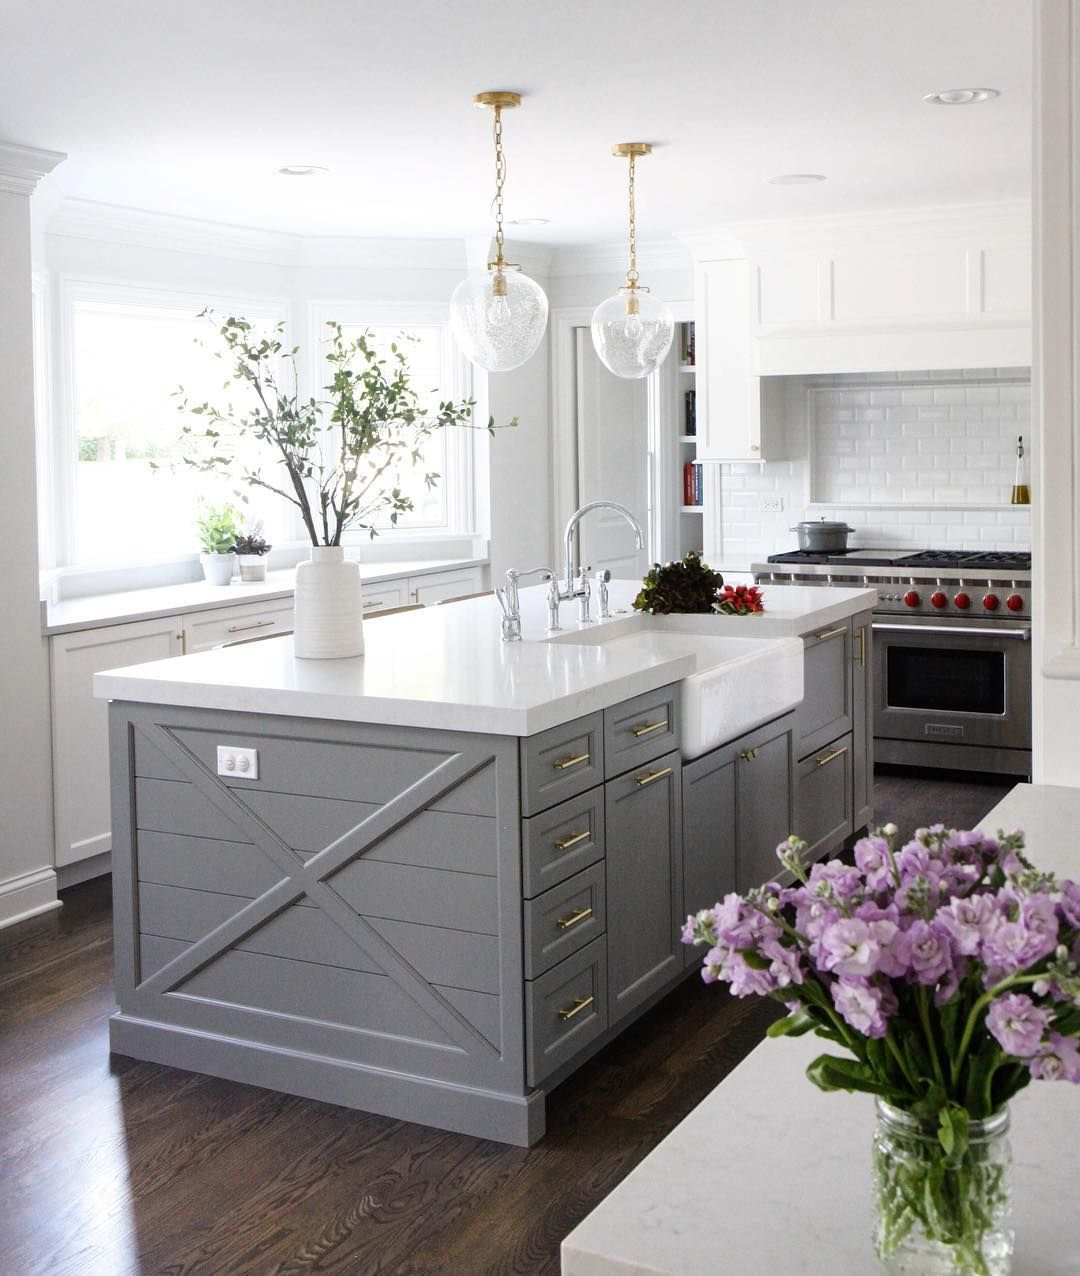 Kitchen Island Paint Color Is Chelsea Gray Benjamin Moorevia Inspiration Gray And White Kitchen Designs Decorating Design